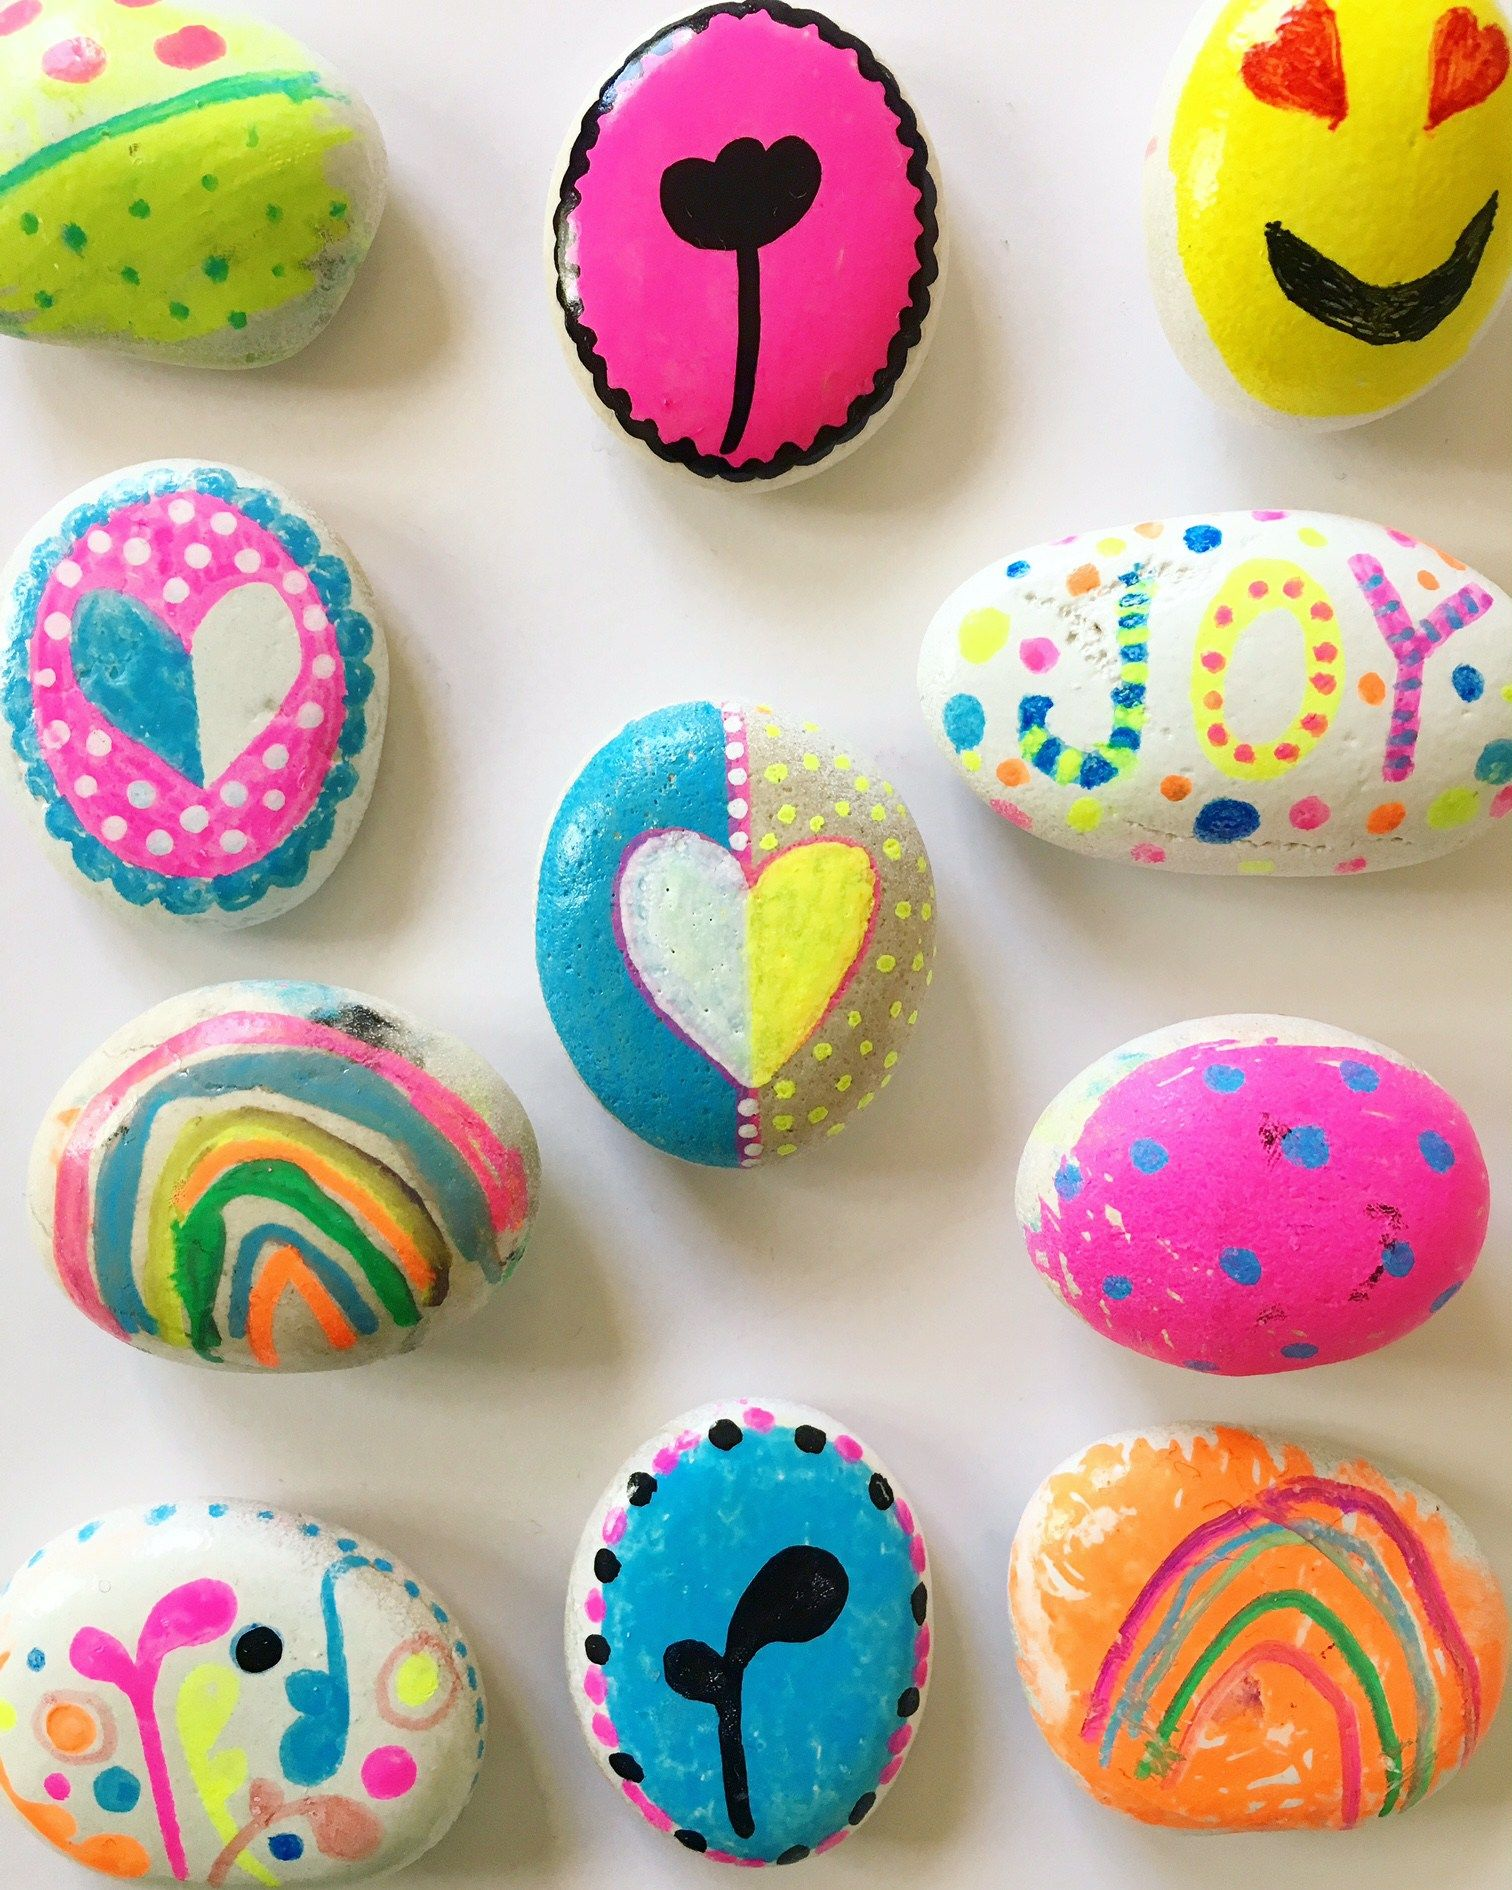 Painted Rock Design Ideas: Rock Painting Ideas For Kids